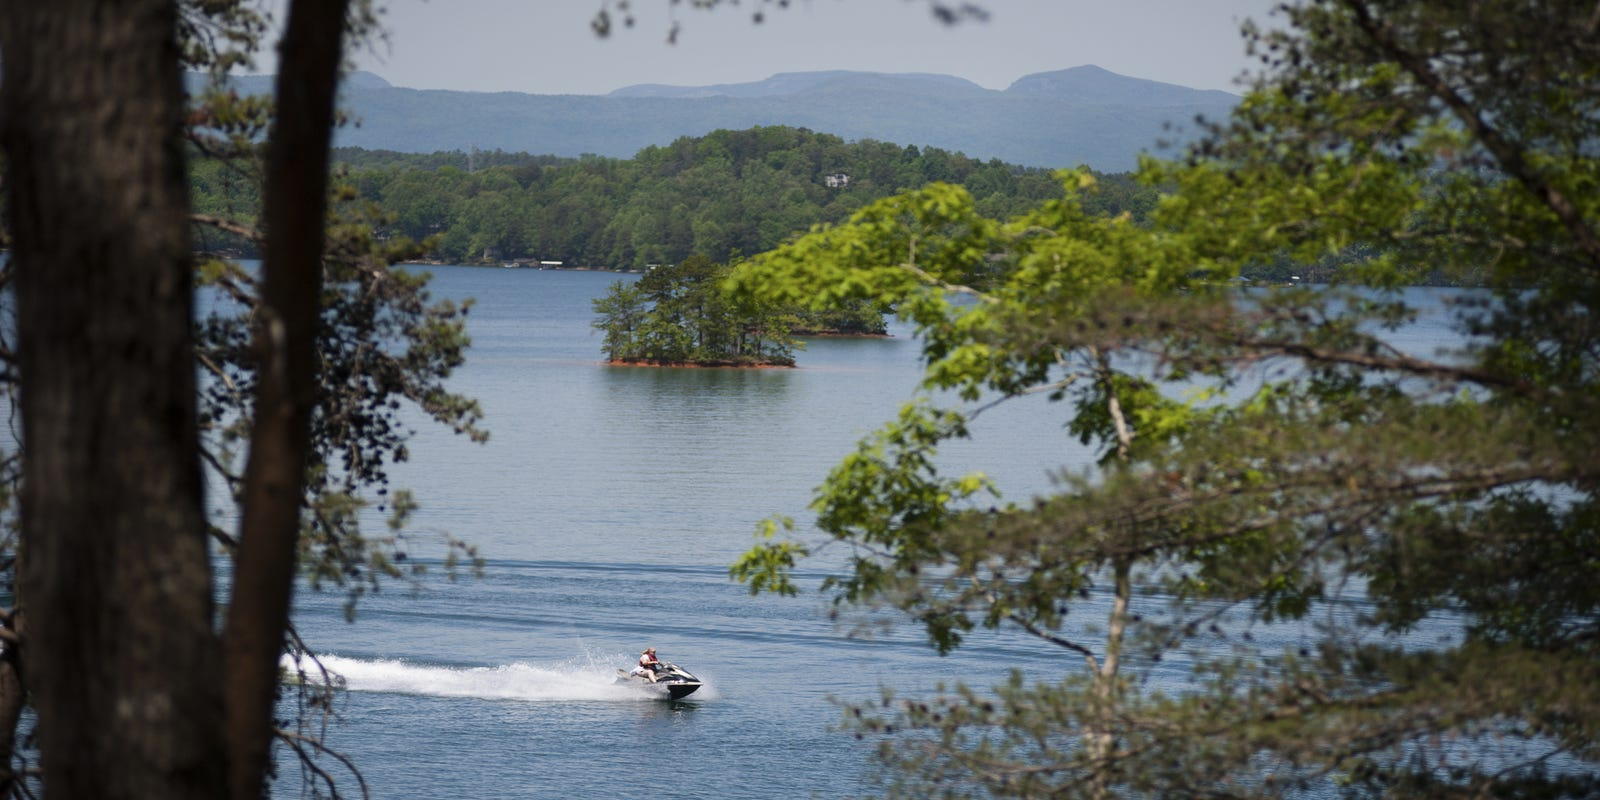 Duke's relicensing deal will keep Keowee lake levels higher